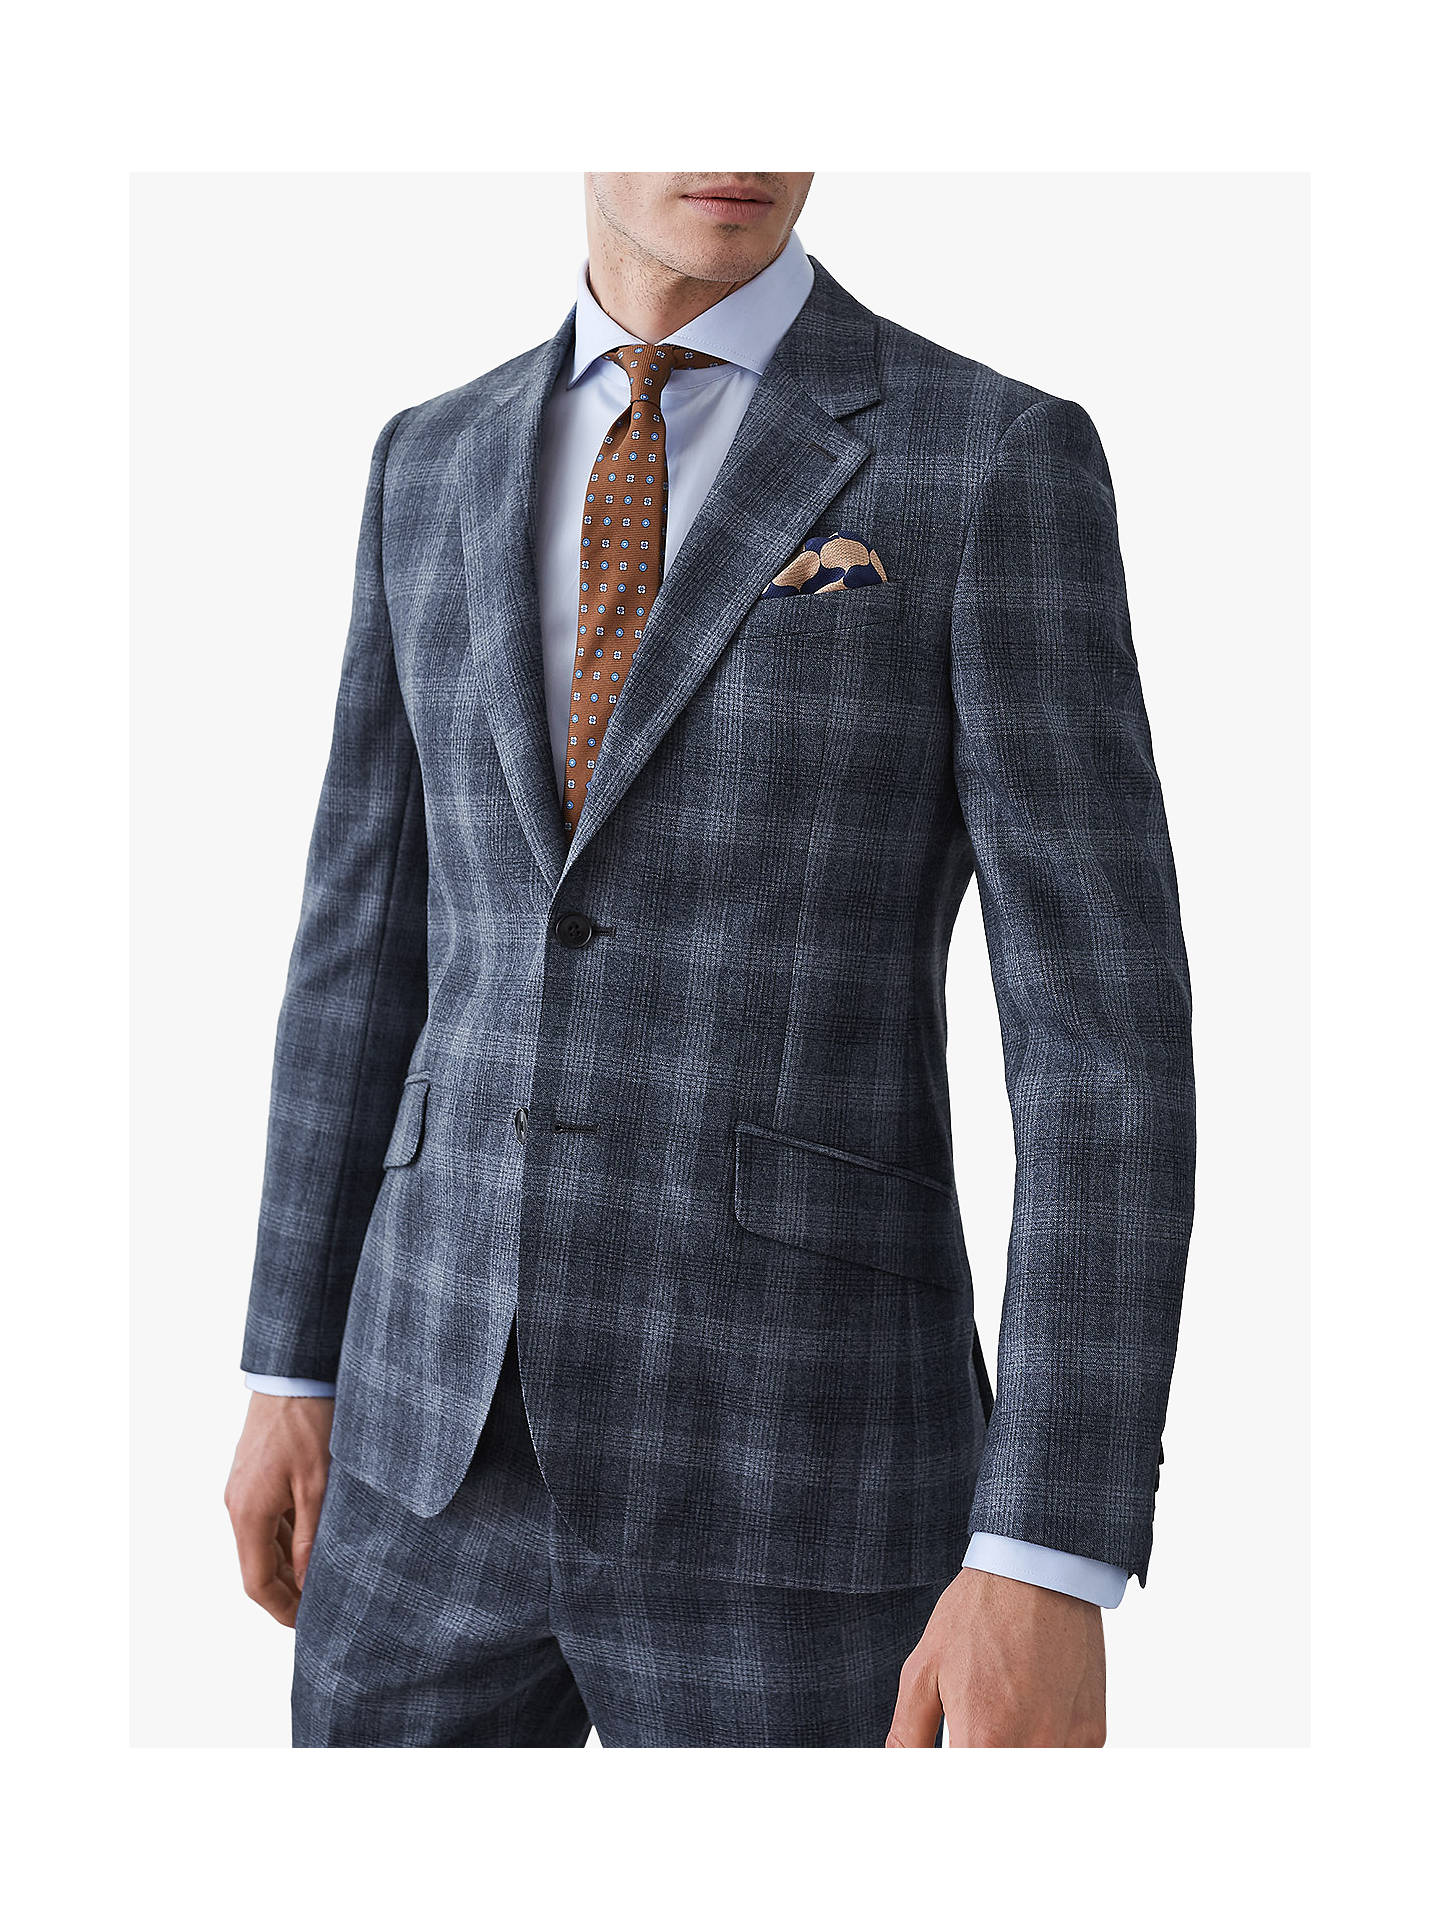 BuyReiss Bondi Wool Check Slim Fit Suit Jacket, Airforce Blue, 36R Online at johnlewis.com